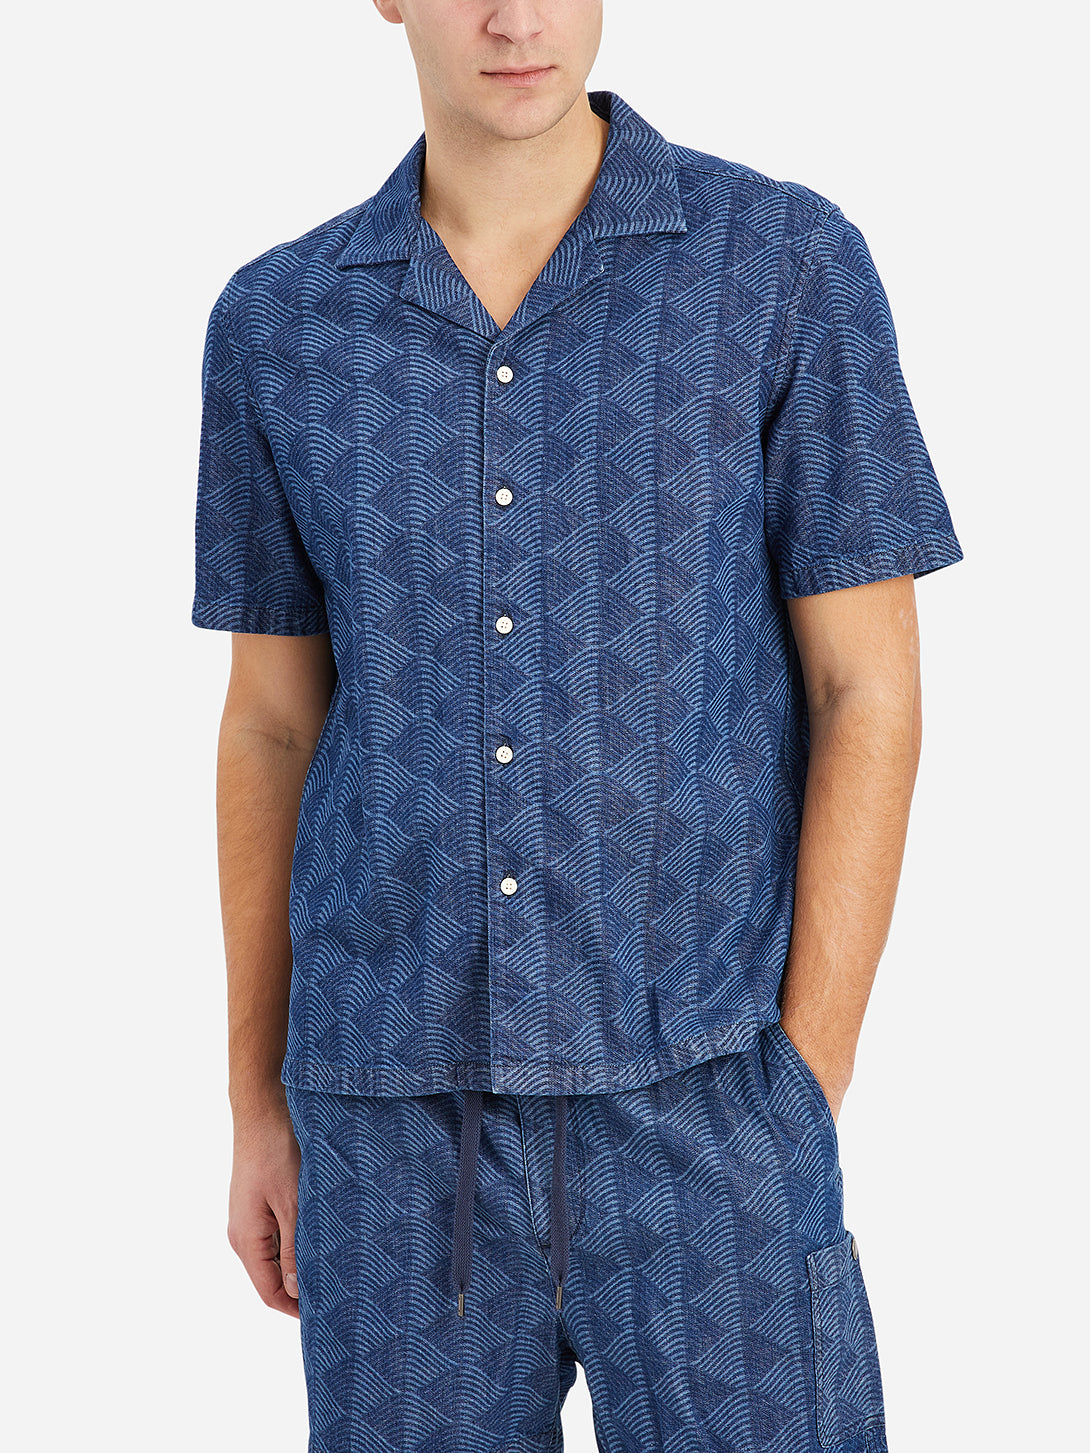 Indigo Print Rockaway Waves Shirt Men's cotton shirts ONS Clothing